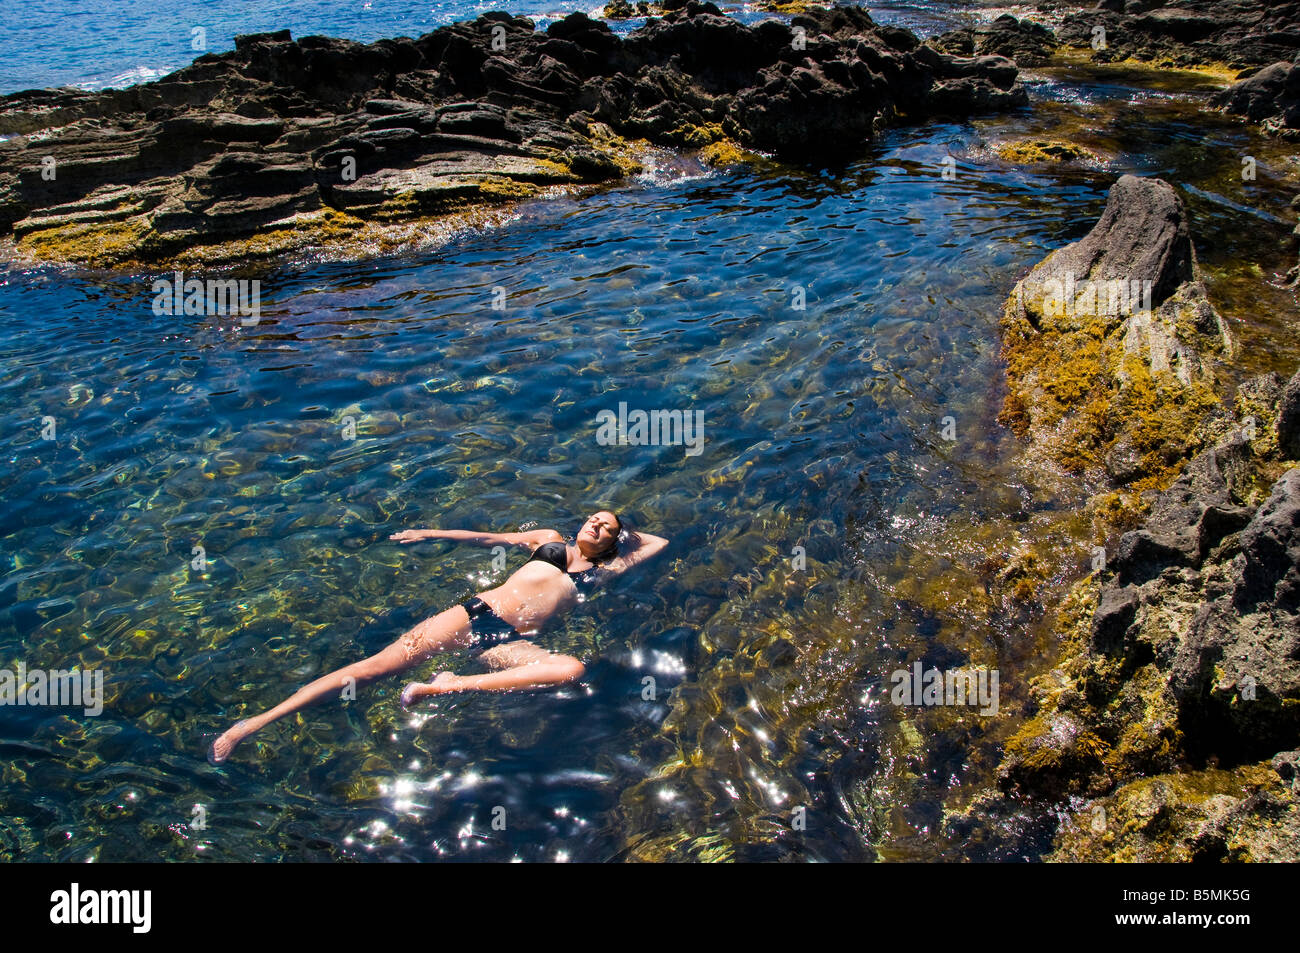 Woman floating in the Mediterranean water. Island of Pantelleria, Sicily, Italy. Stock Photo